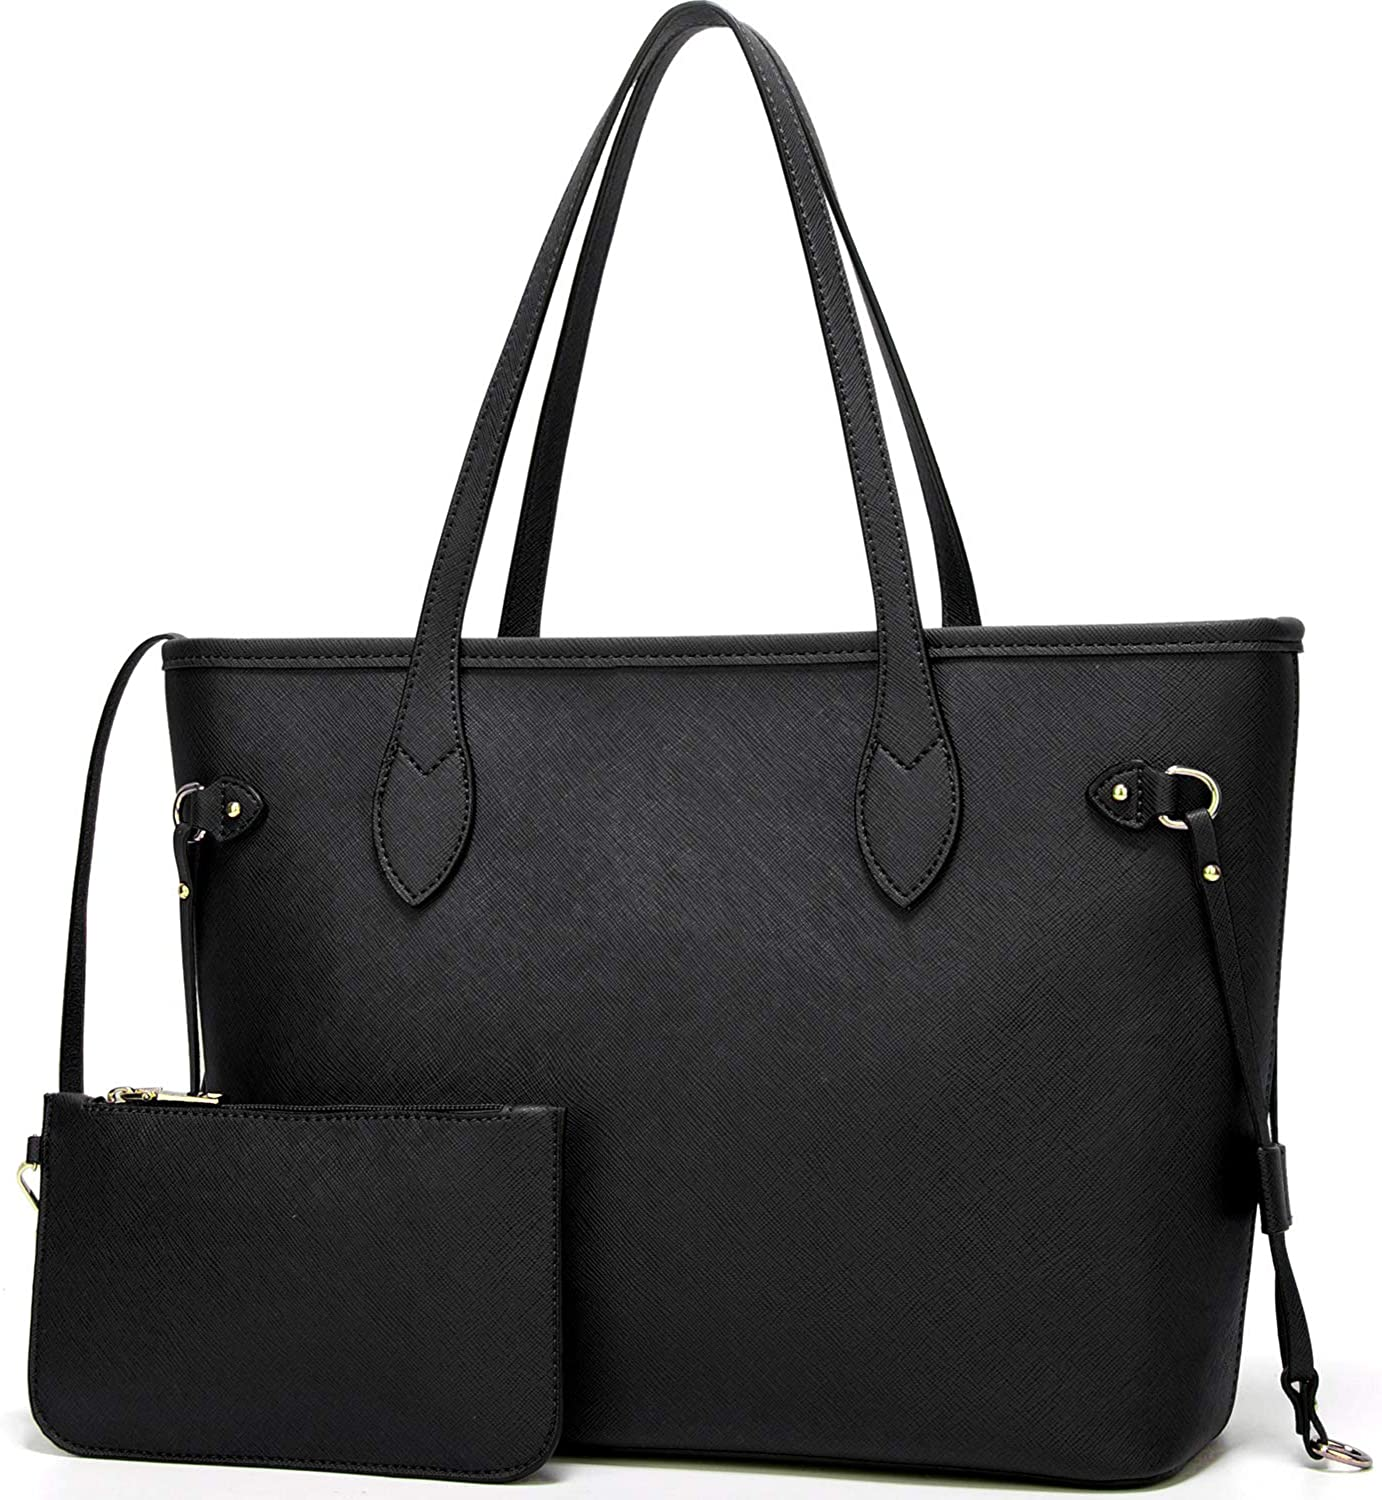 Top 10 No Place Like Home Tote